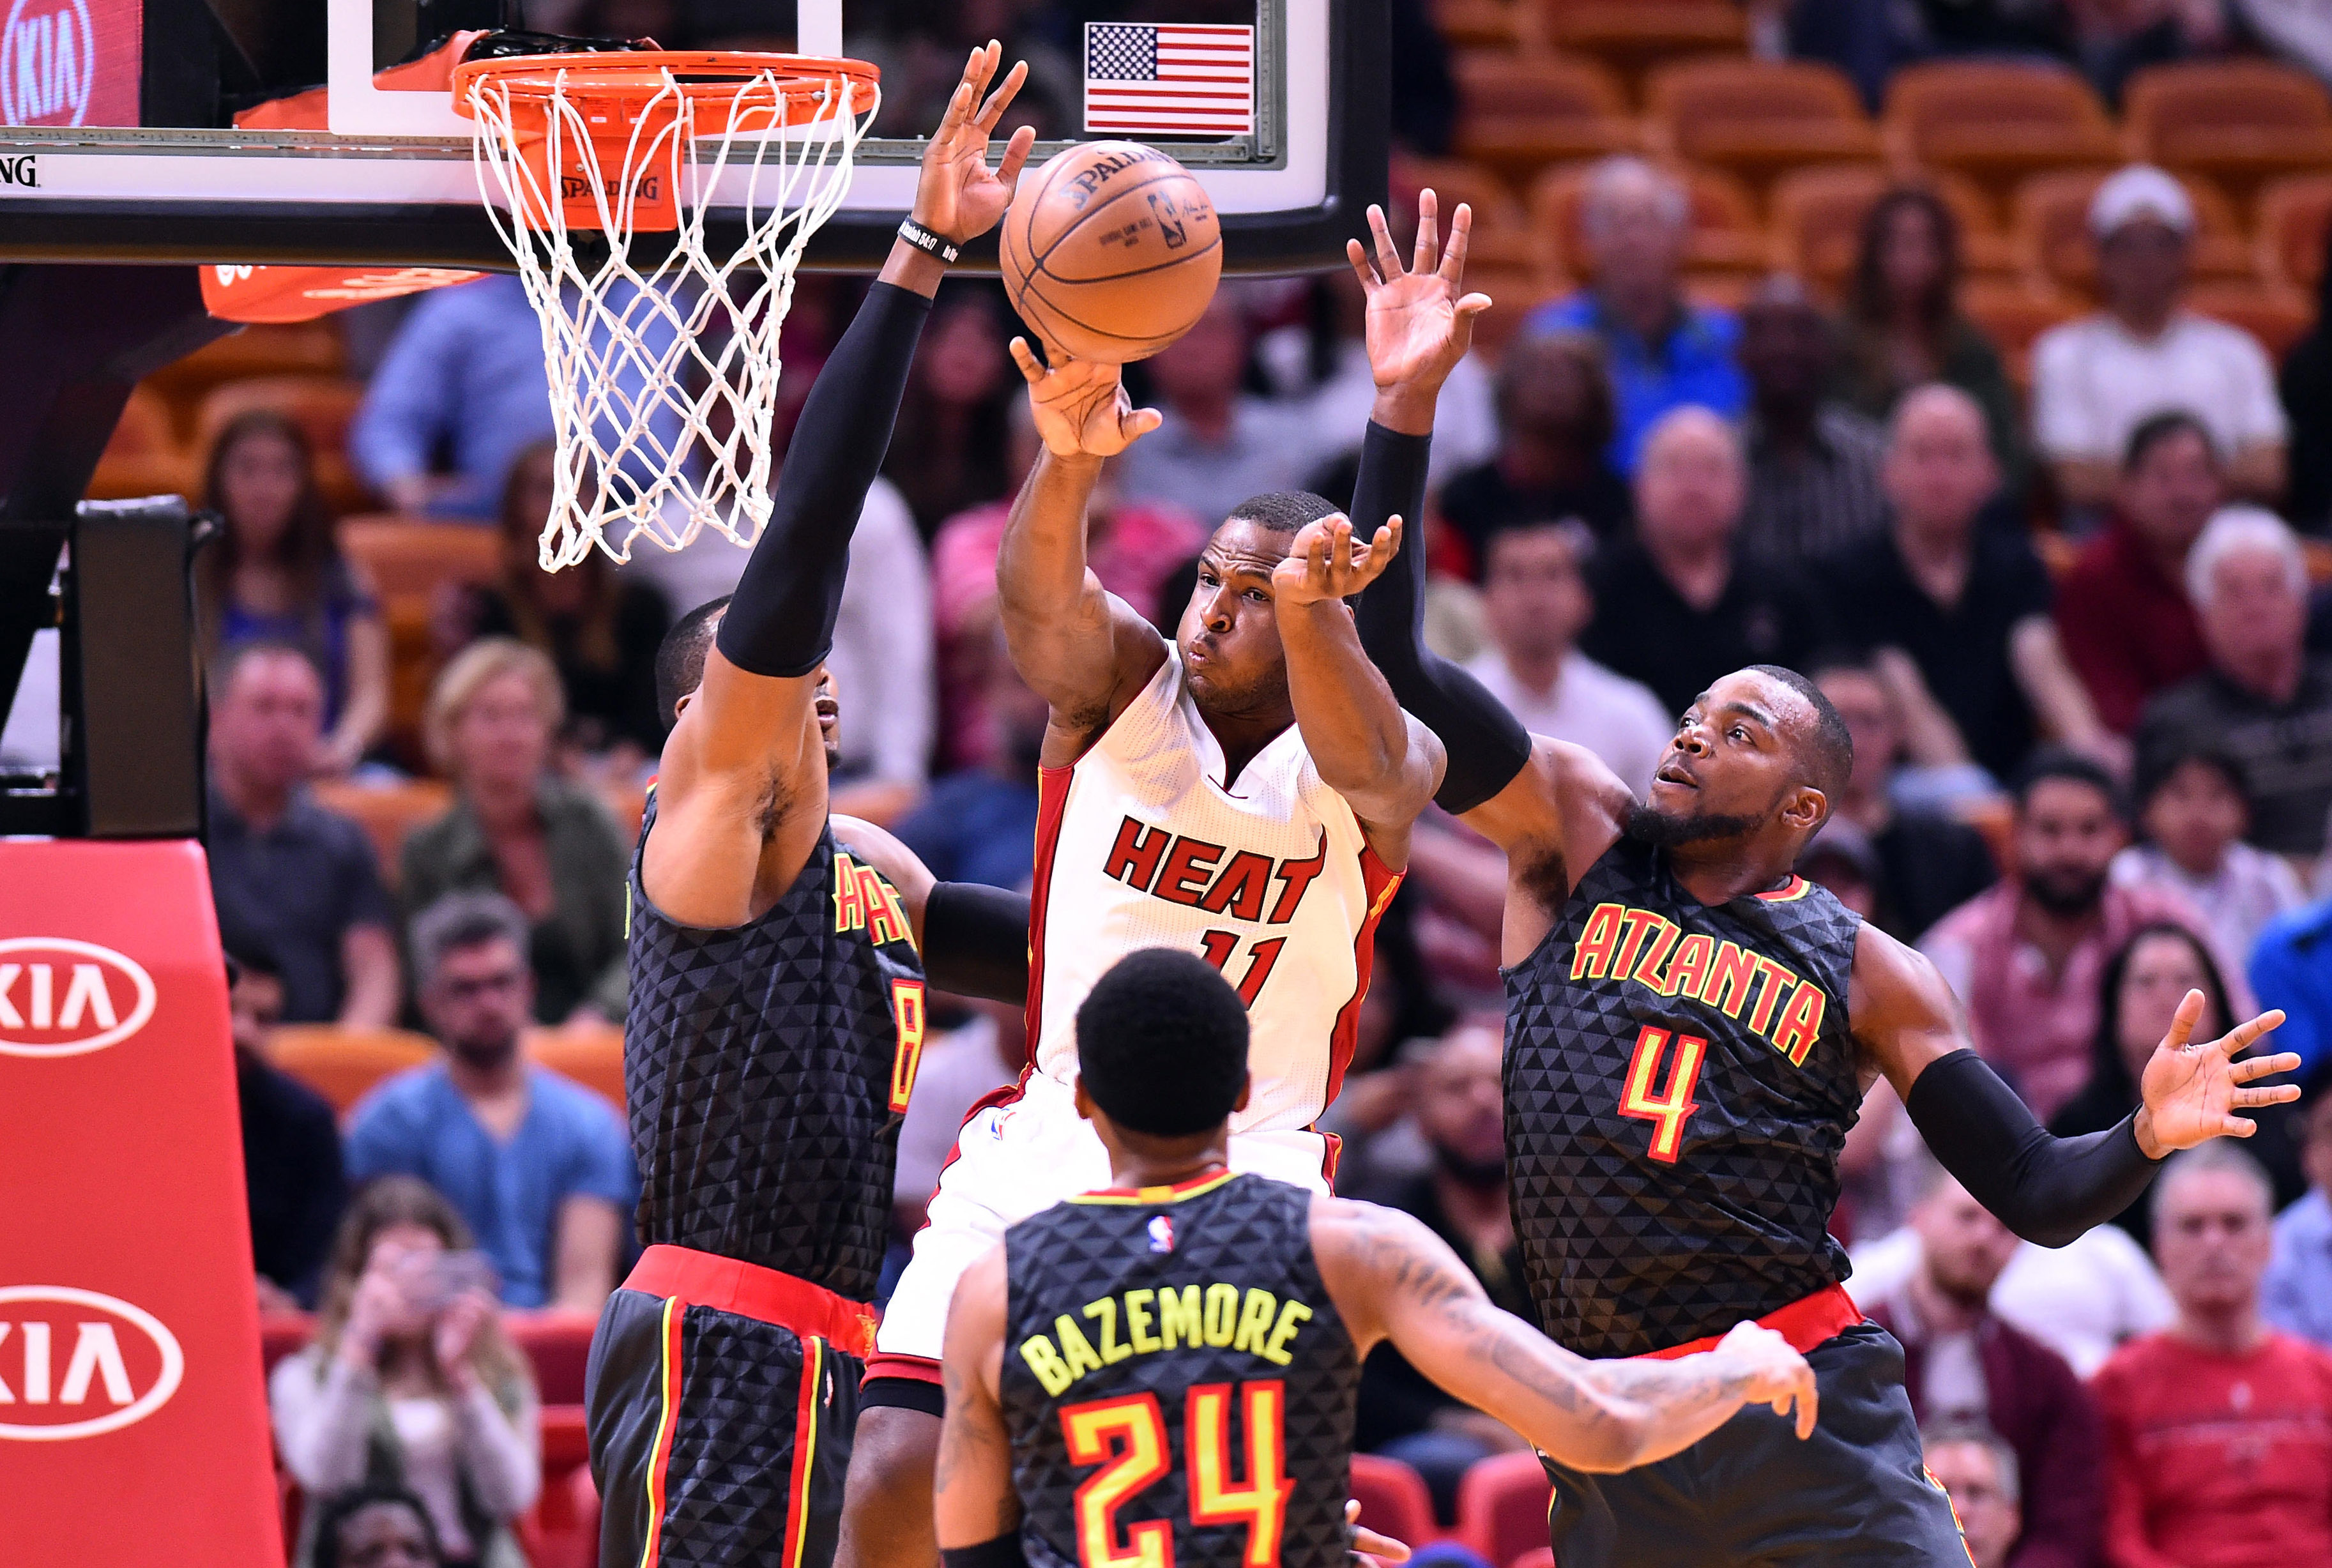 Feb 1, 2017; Miami, FL, USA; Miami Heat guard Dion Waiters (C) is pressured by Atlanta Hawks center Dwight Howard (L) and Atlanta Hawks forward Paul Millsap (R) during the first half at American Airlines Arena. Mandatory Credit: Steve Mitchell-USA TODAY Sports